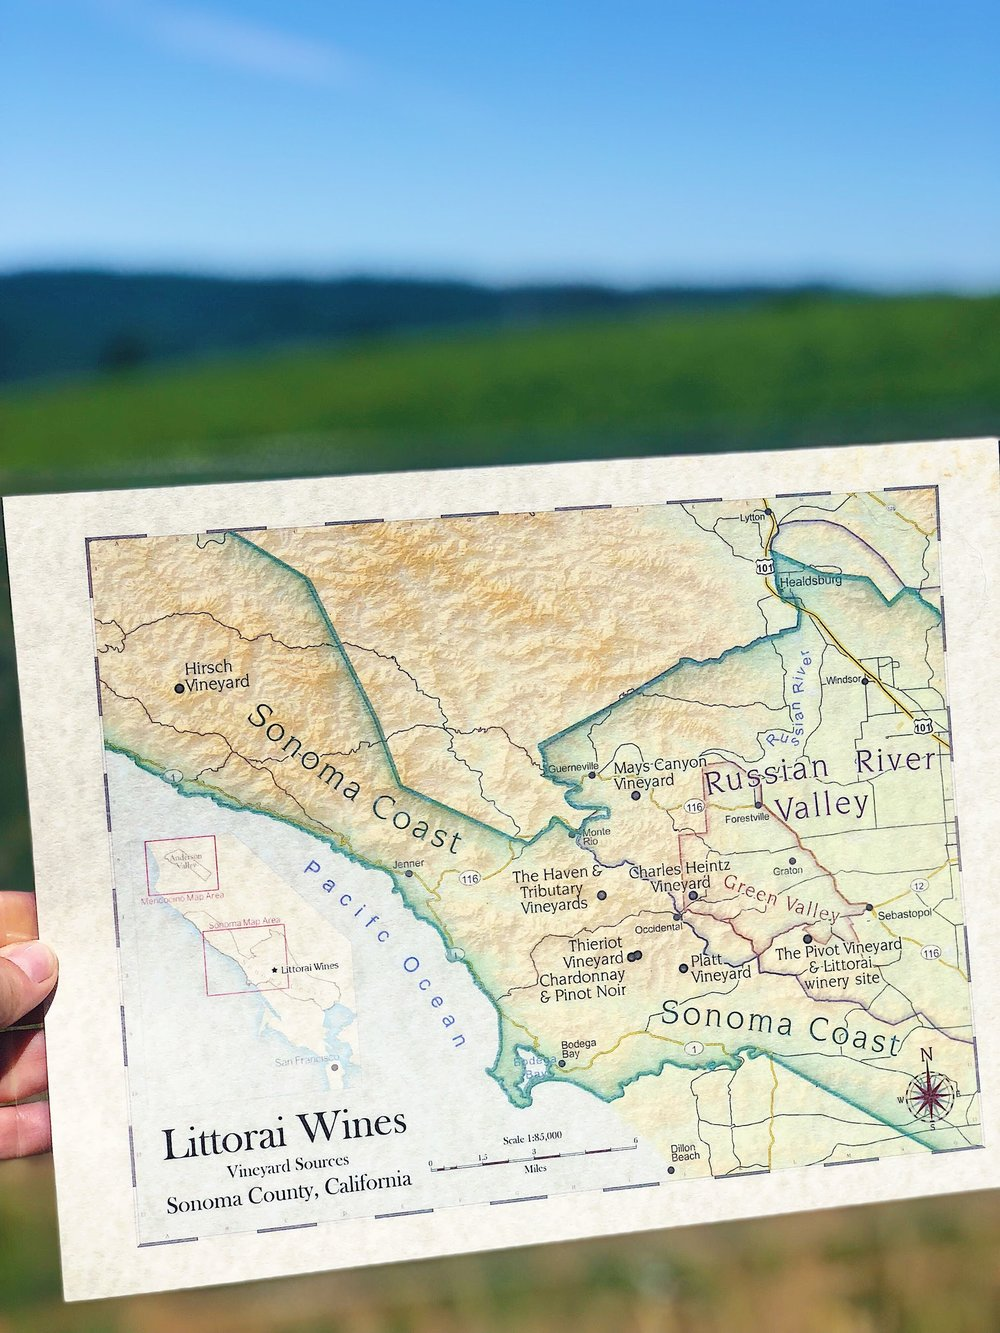 Littorai Wines Vineyard Sources